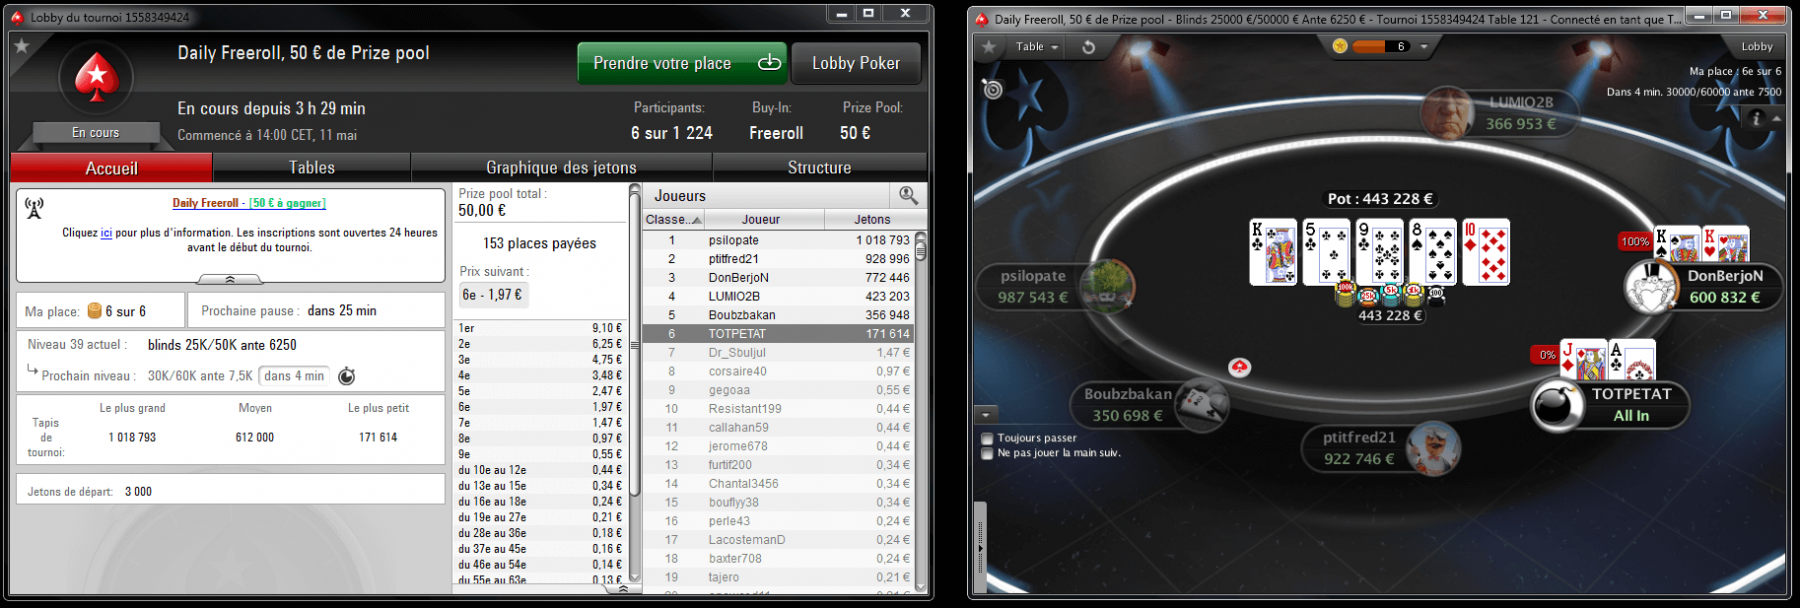 daily_freeroll_11_05.png